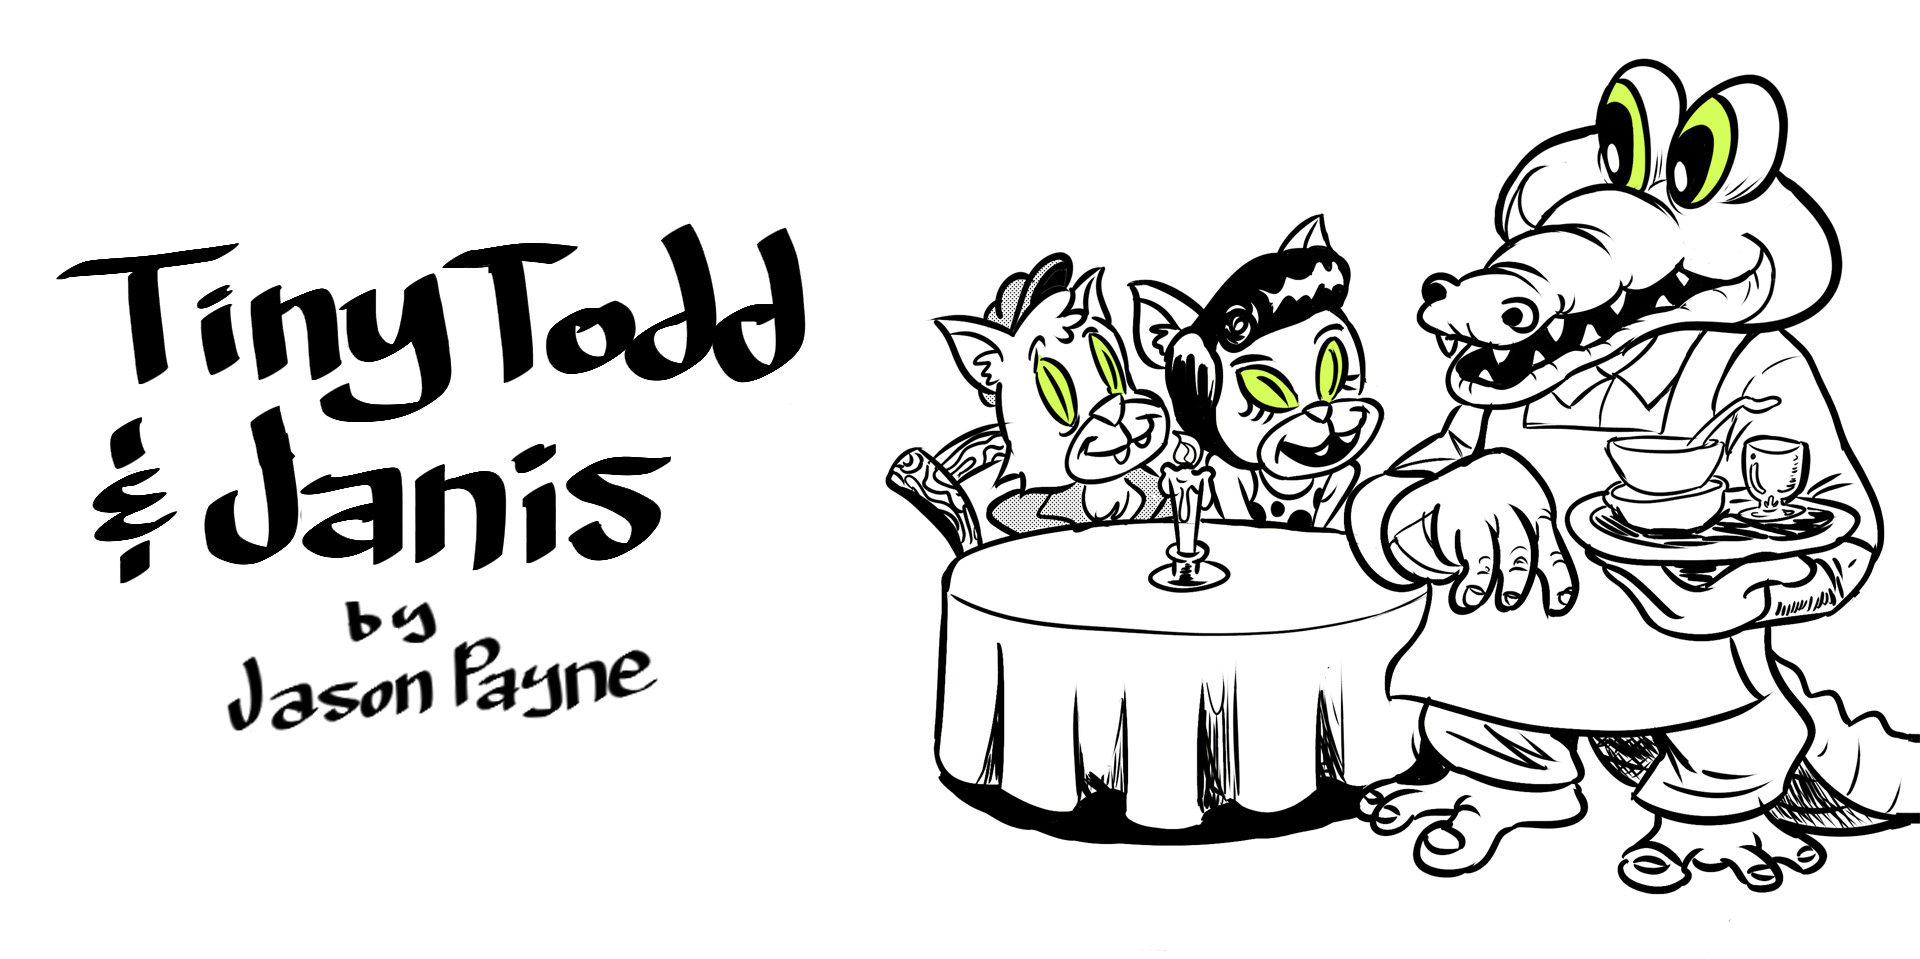 Take What You Need: The Complete Tiny Todd & Janis Stories from 2014-2016